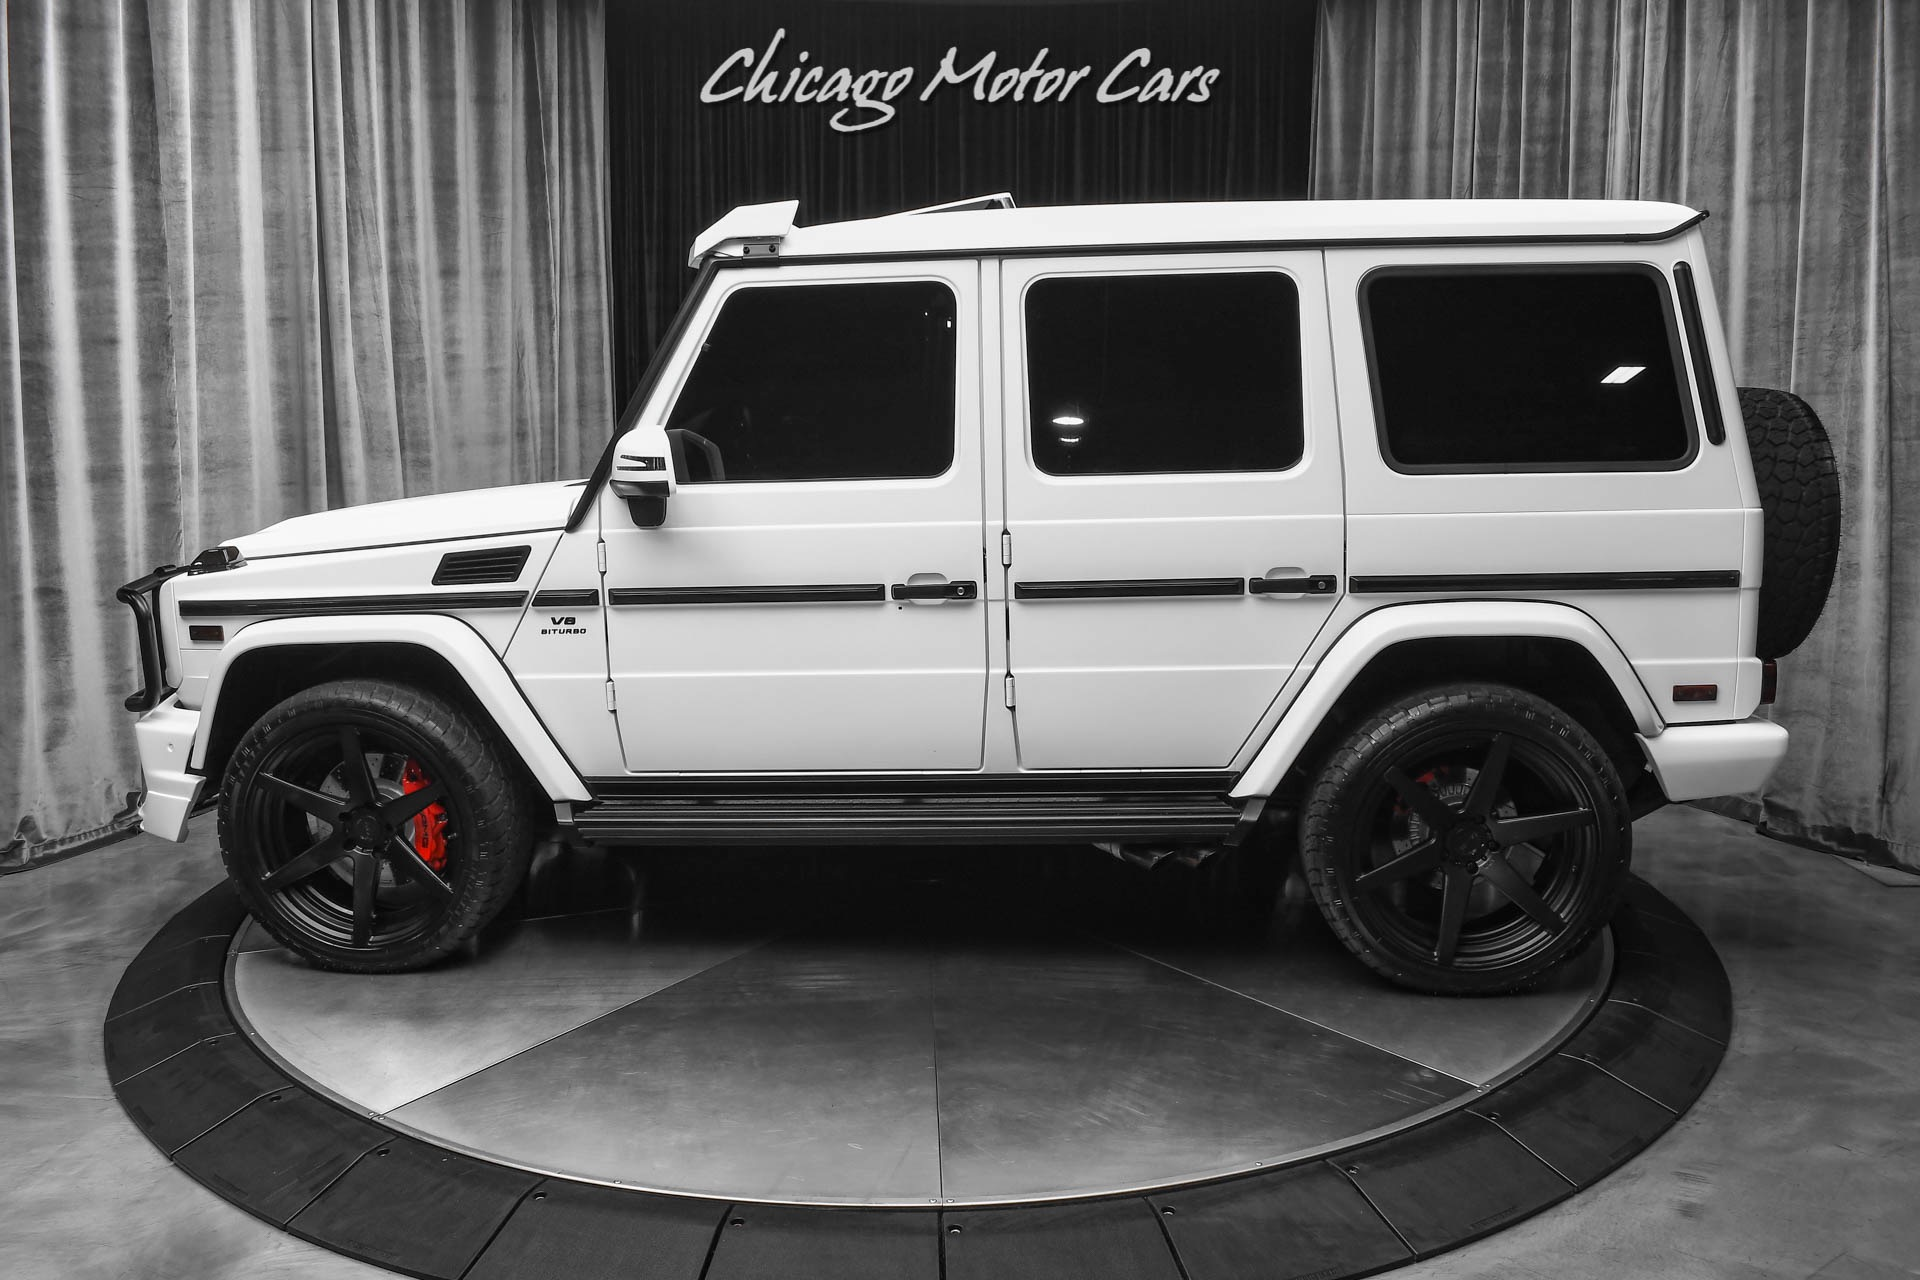 Used-2016-Mercedes-Benz-G63-AMG--3-of-50-SAVAGE-EDITIONS-100K-IN-UPGRADES